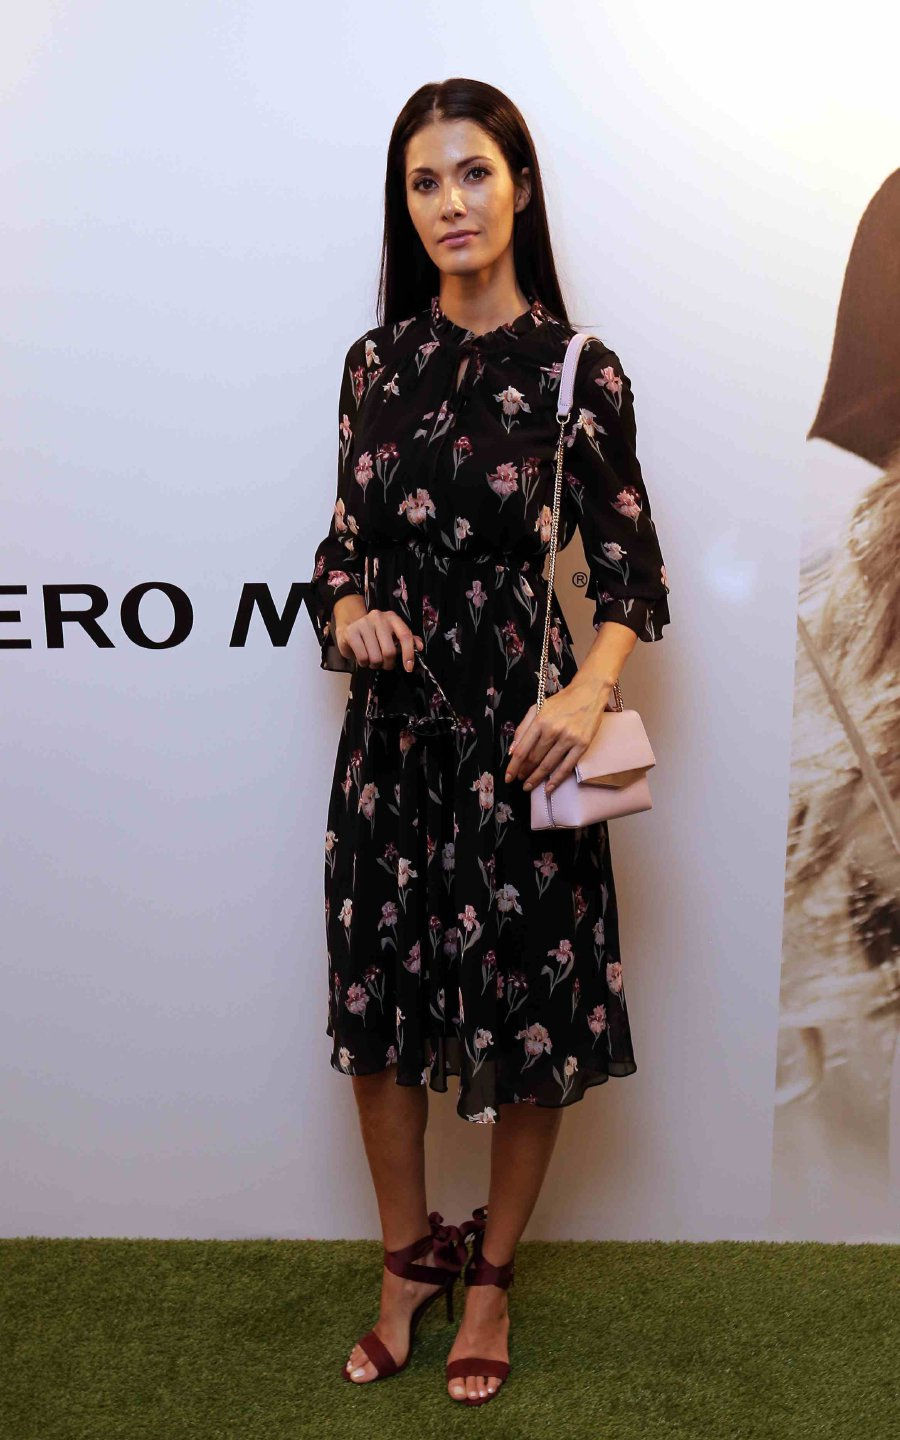 ab9d0054 Vero Moda caters to fashionable young women and its designs closely follow  catwalk trends. Photo by Saifullizan Tamadi.